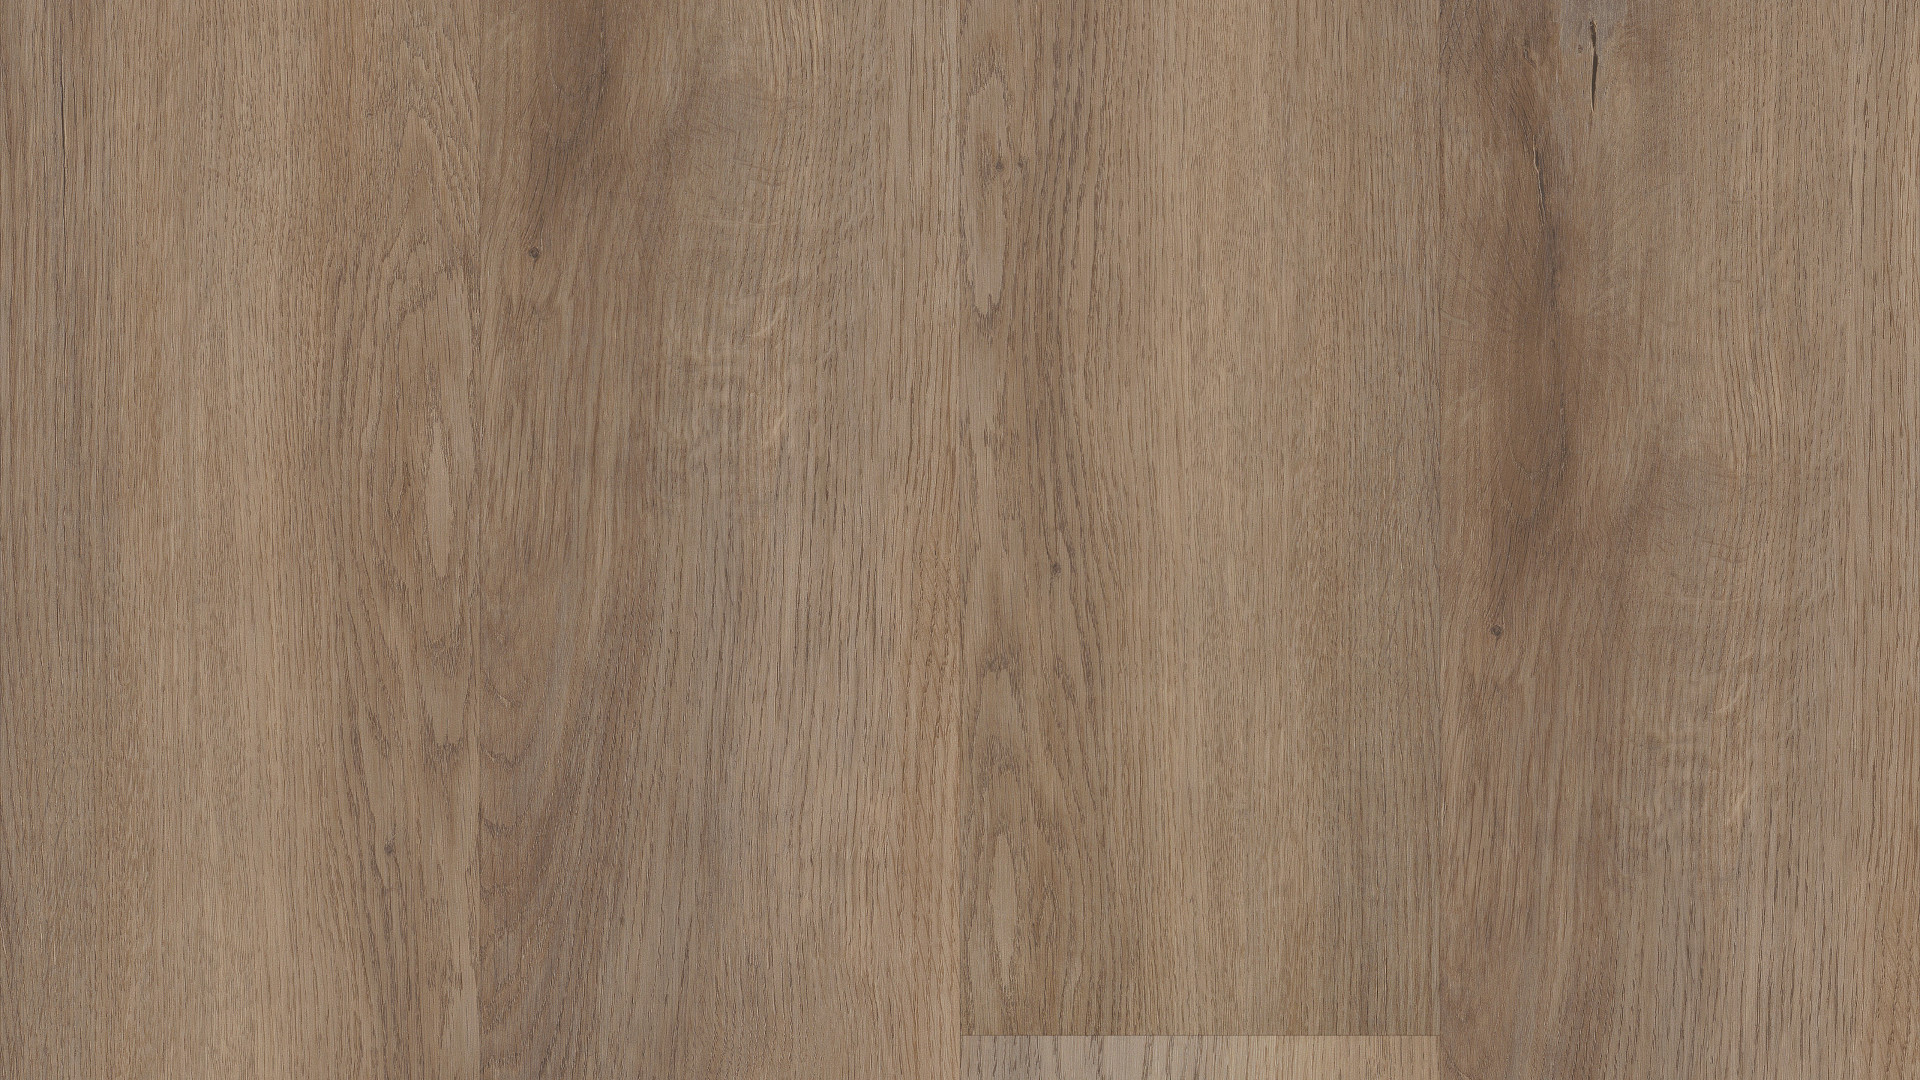 Cartwheel Oak Luxury Vinyl Plank Flooring Coretec Pro Galaxy